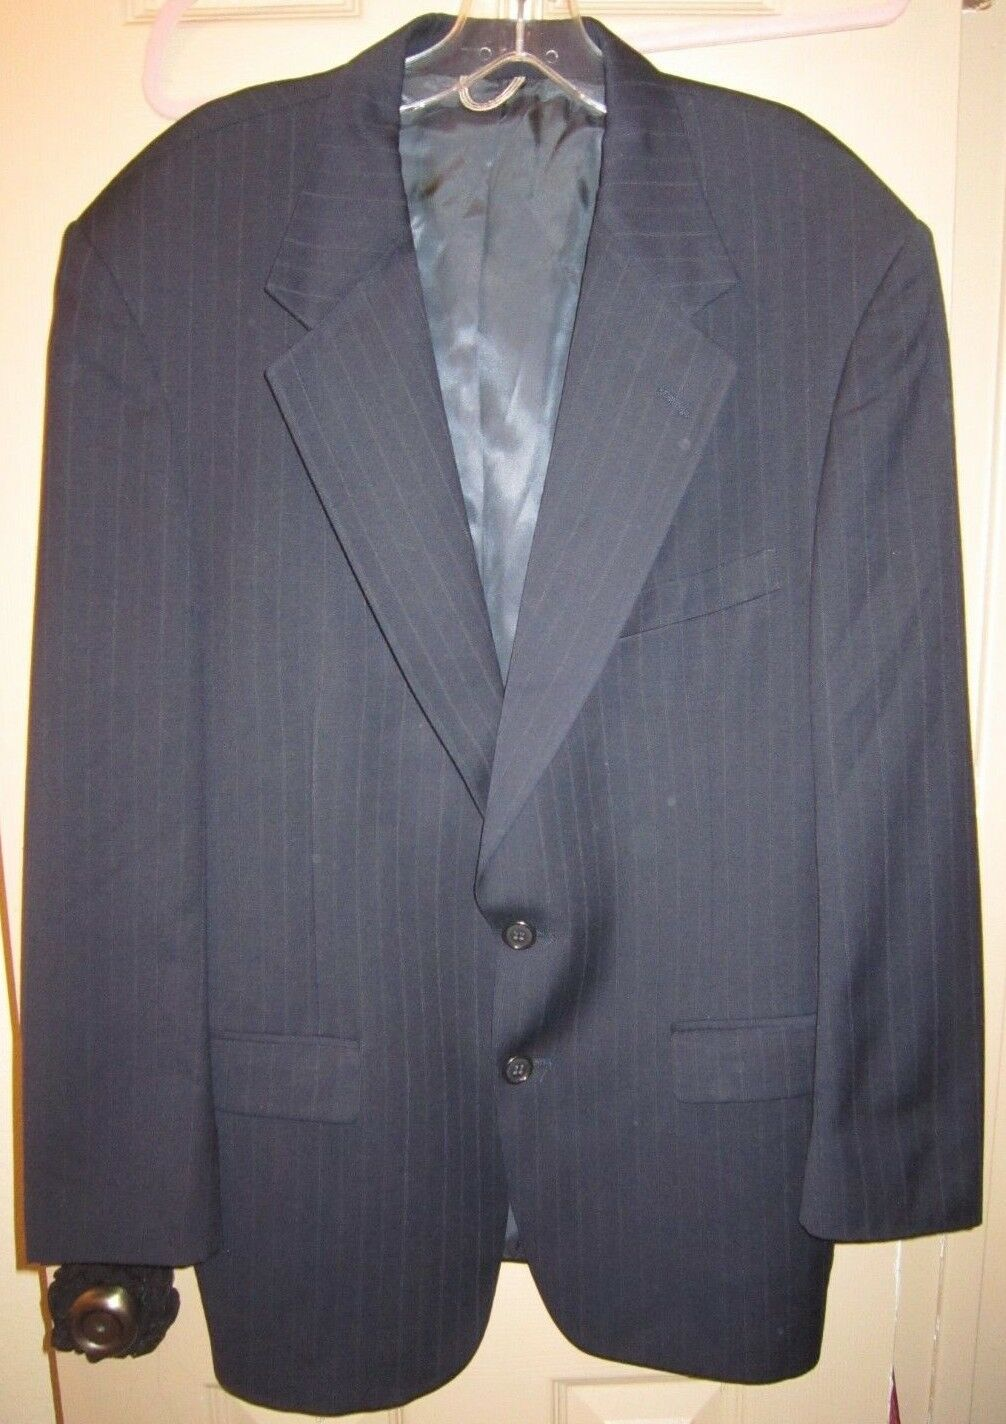 SZ 42R 32W X 30L STAFFORD EXECUTIVE HARTMARX blueE STRIPED TWO BUTTON SUIT, EUC